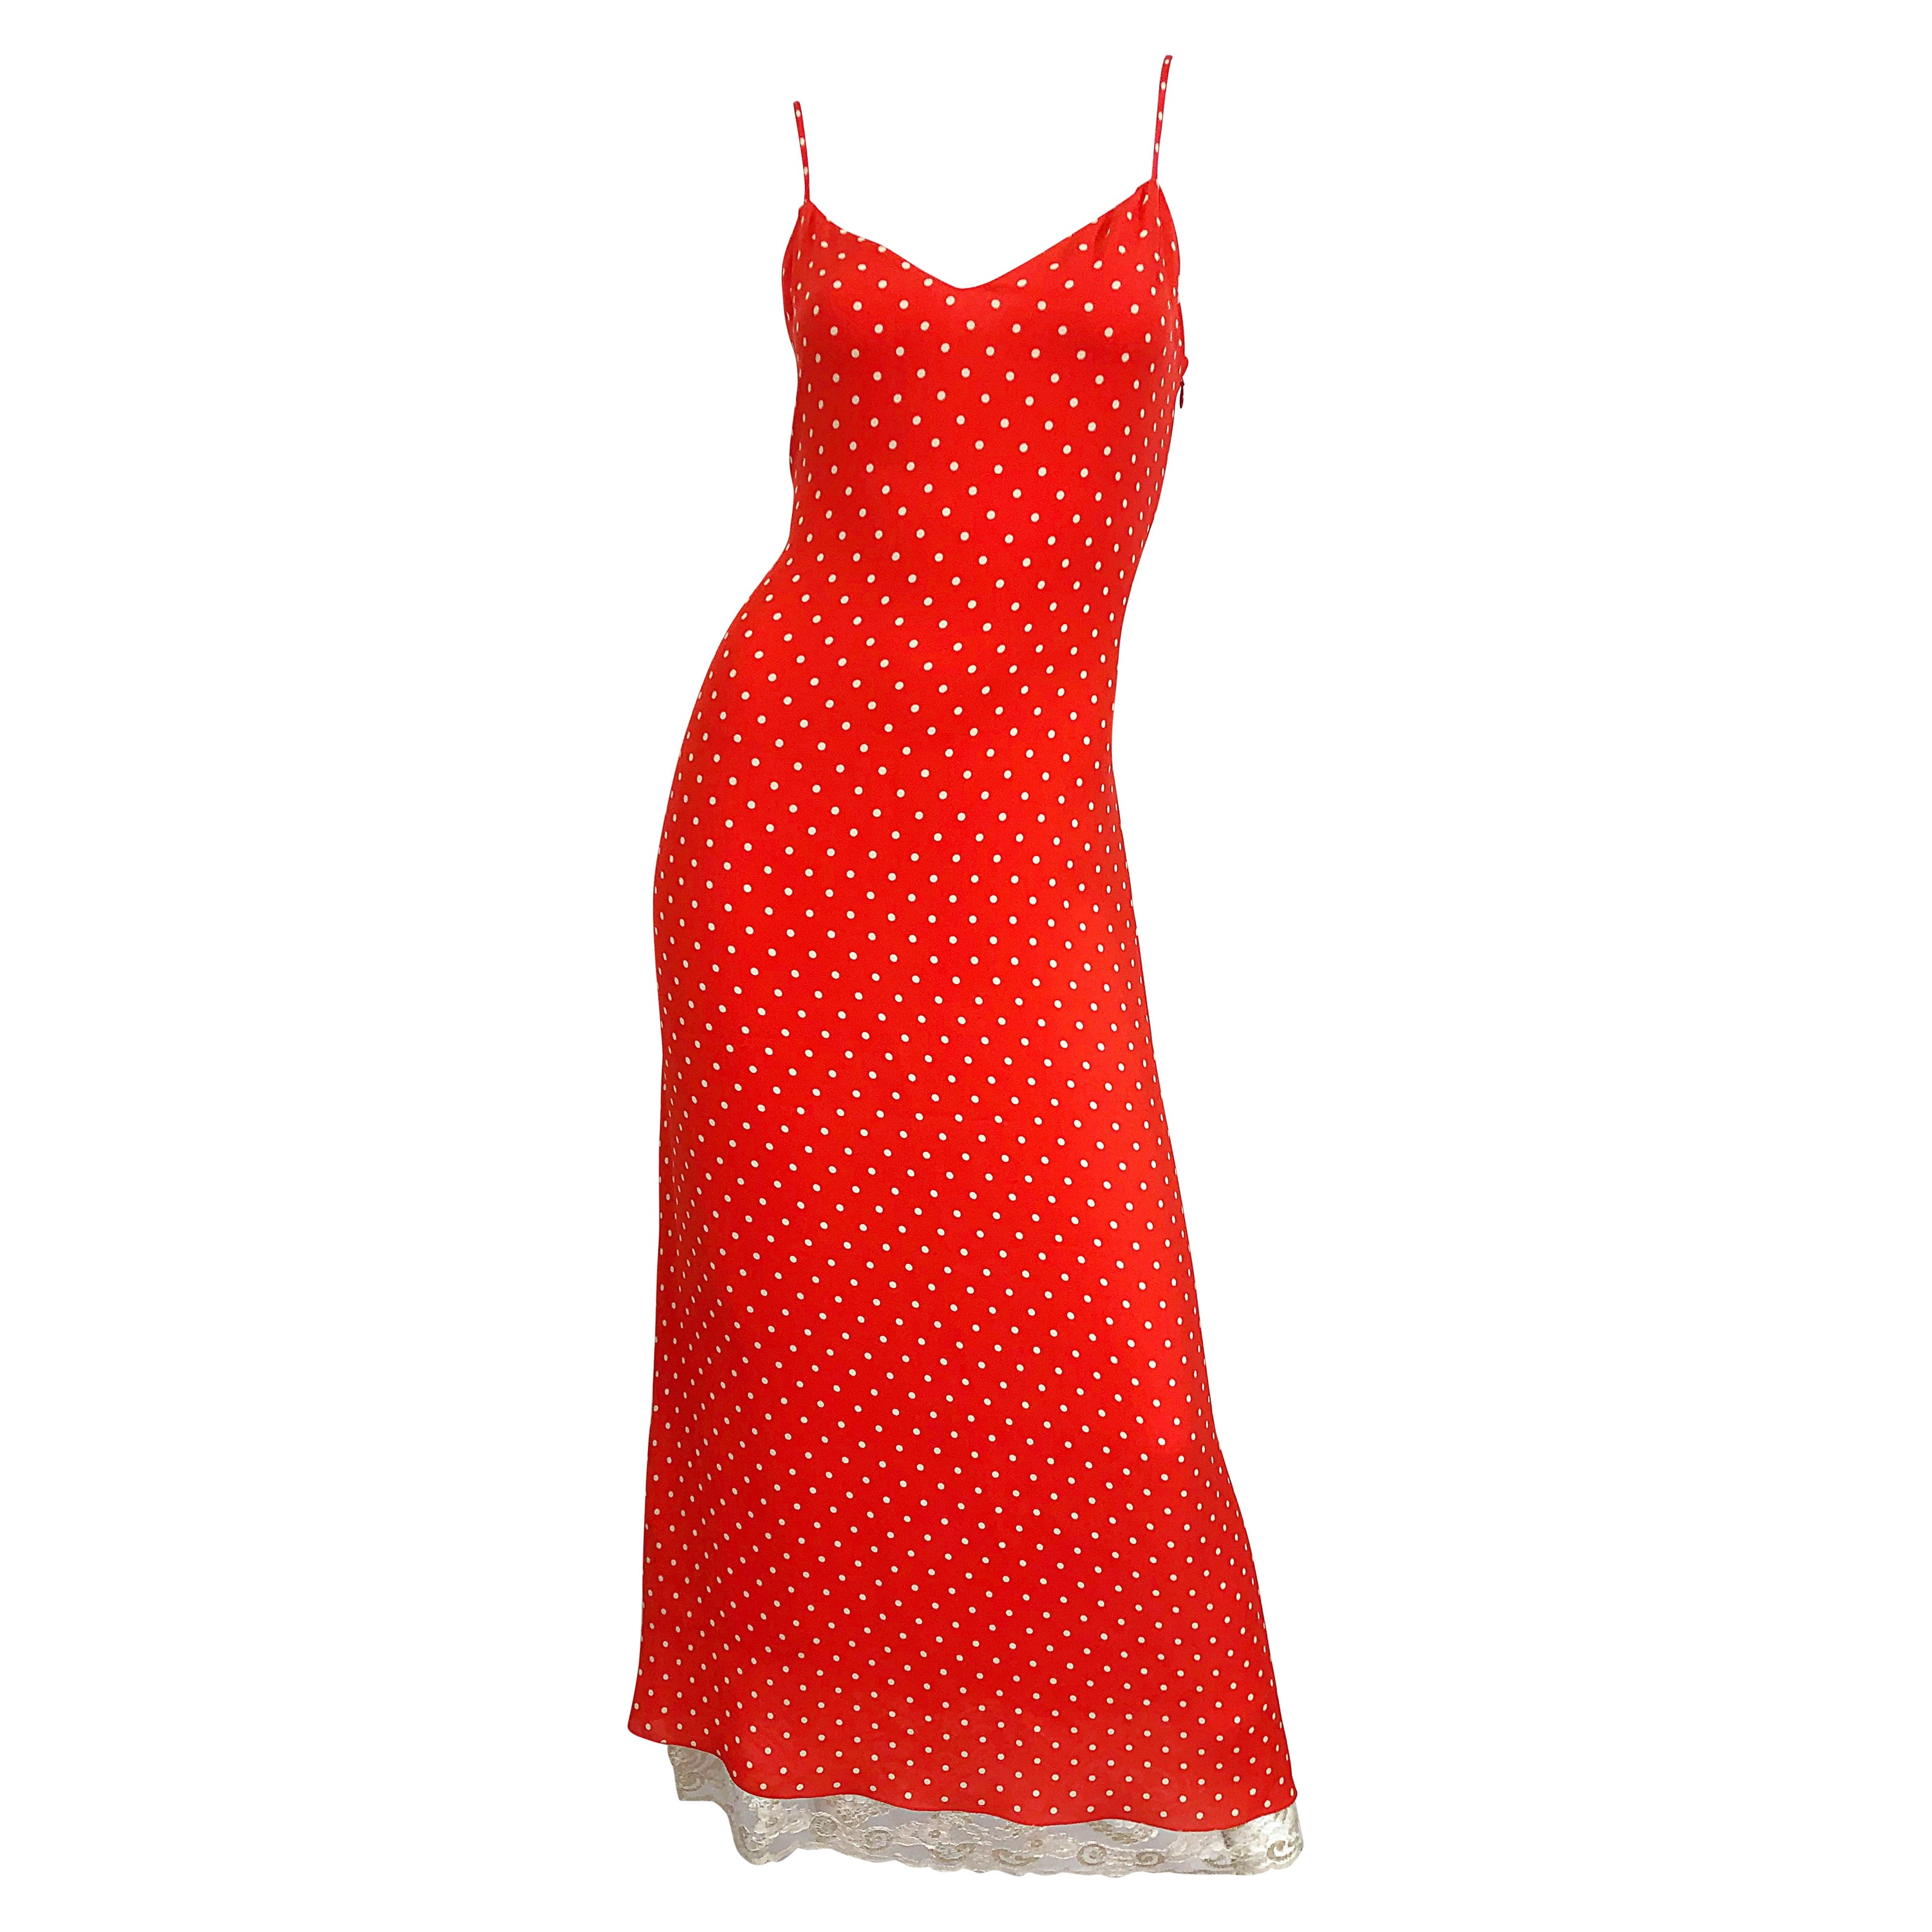 Vintage Valentino Size 8 / 10 Red and White Silk + Lace Polka Dot Gown 70s Dress